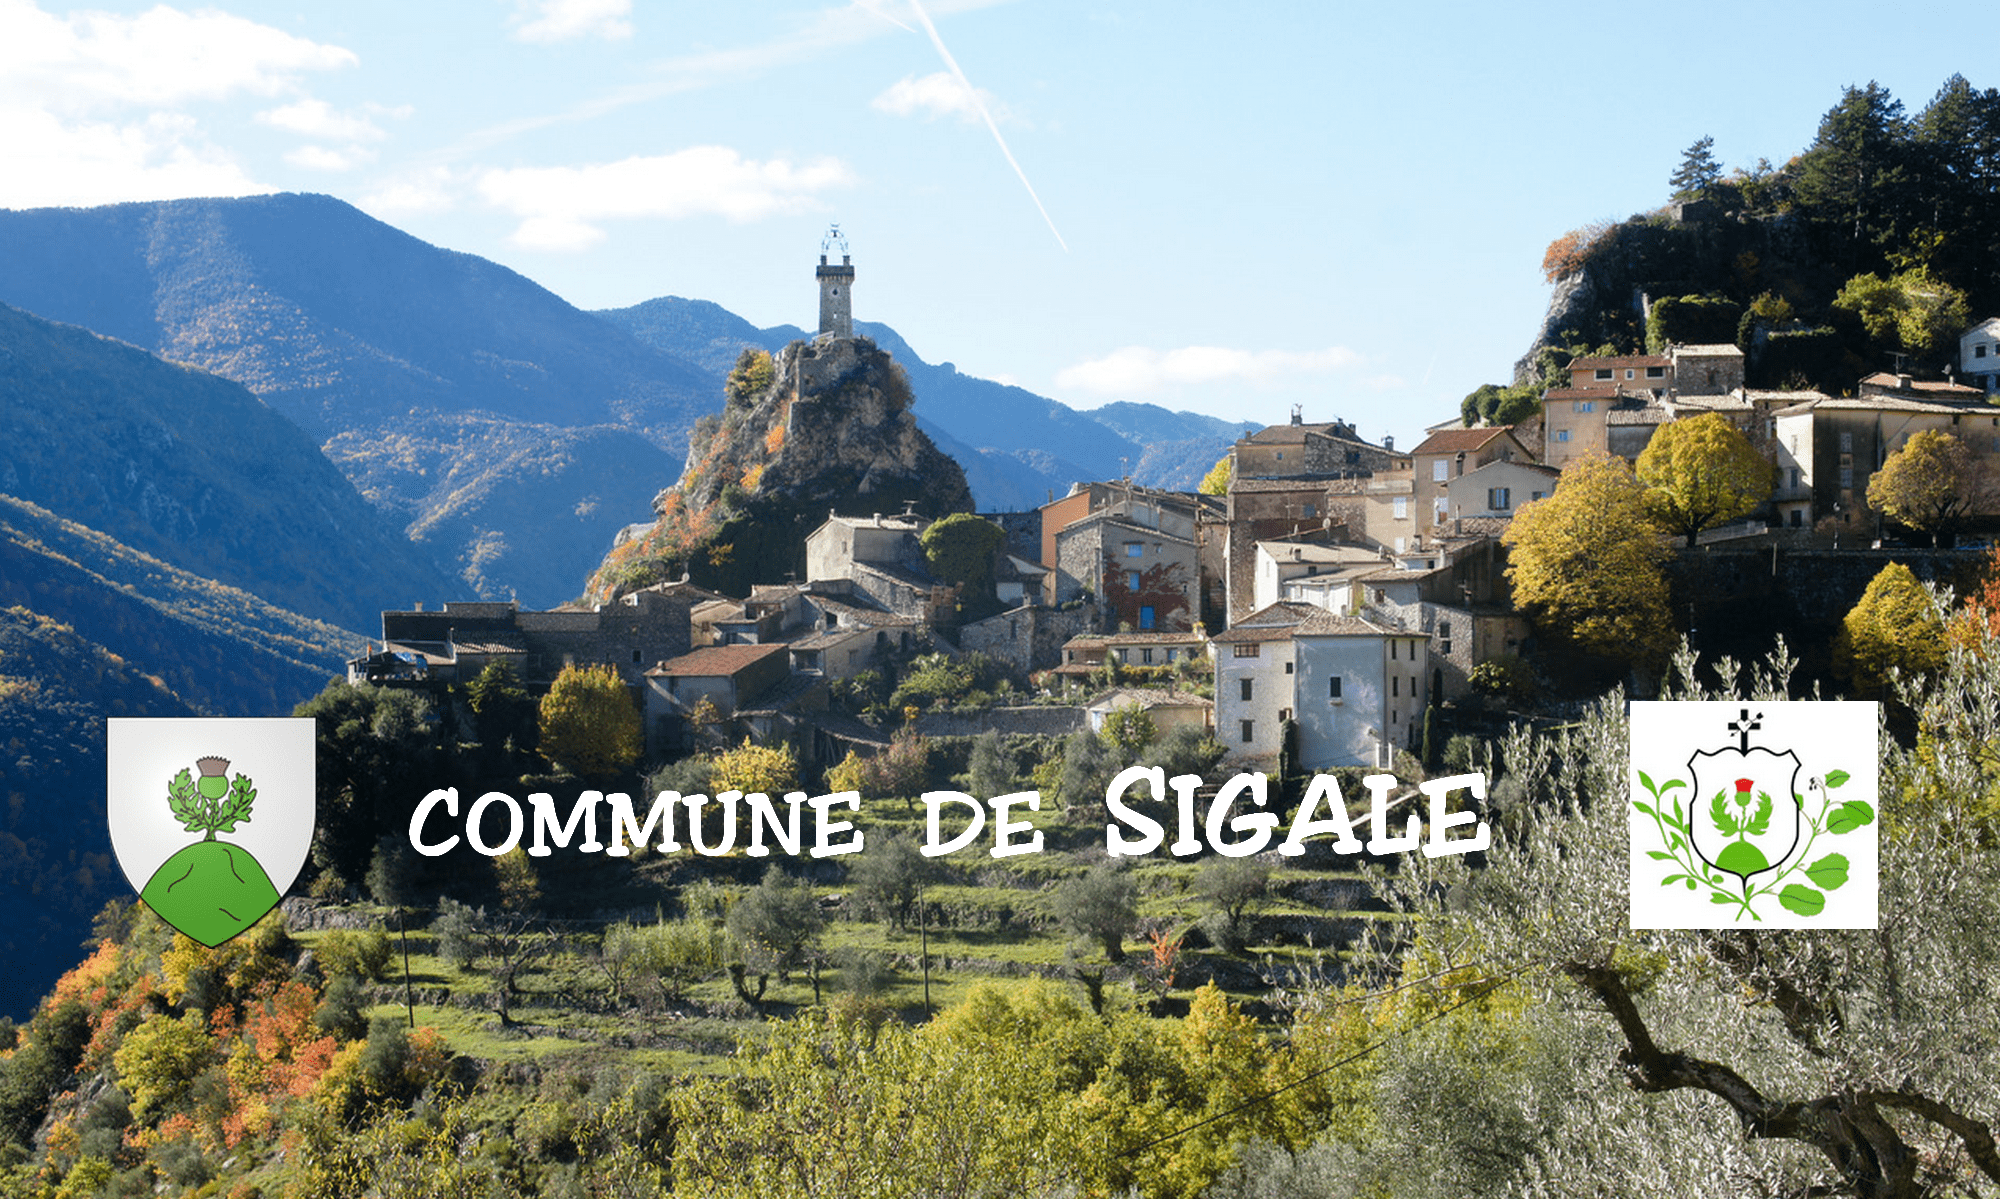 Commune de Sigale